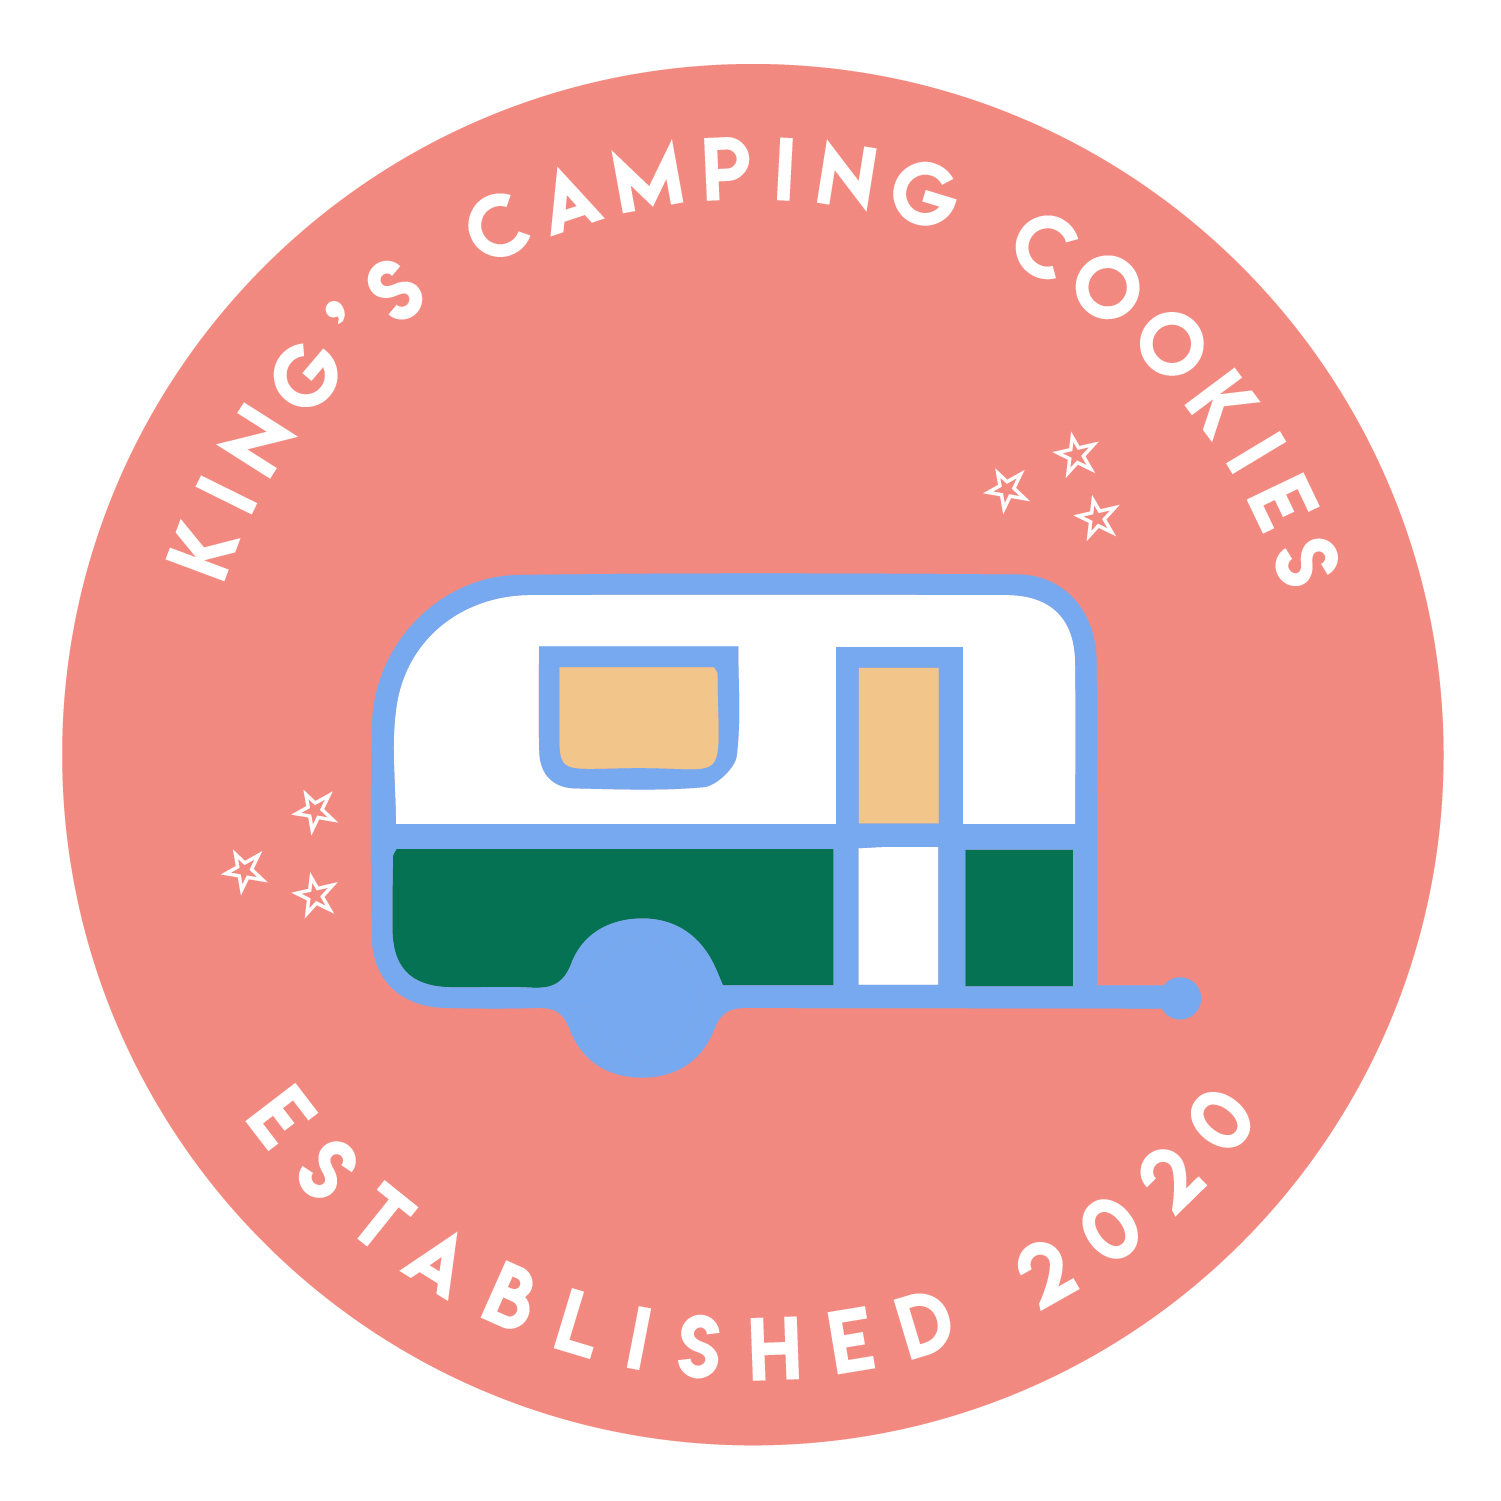 King's Camping Cookies